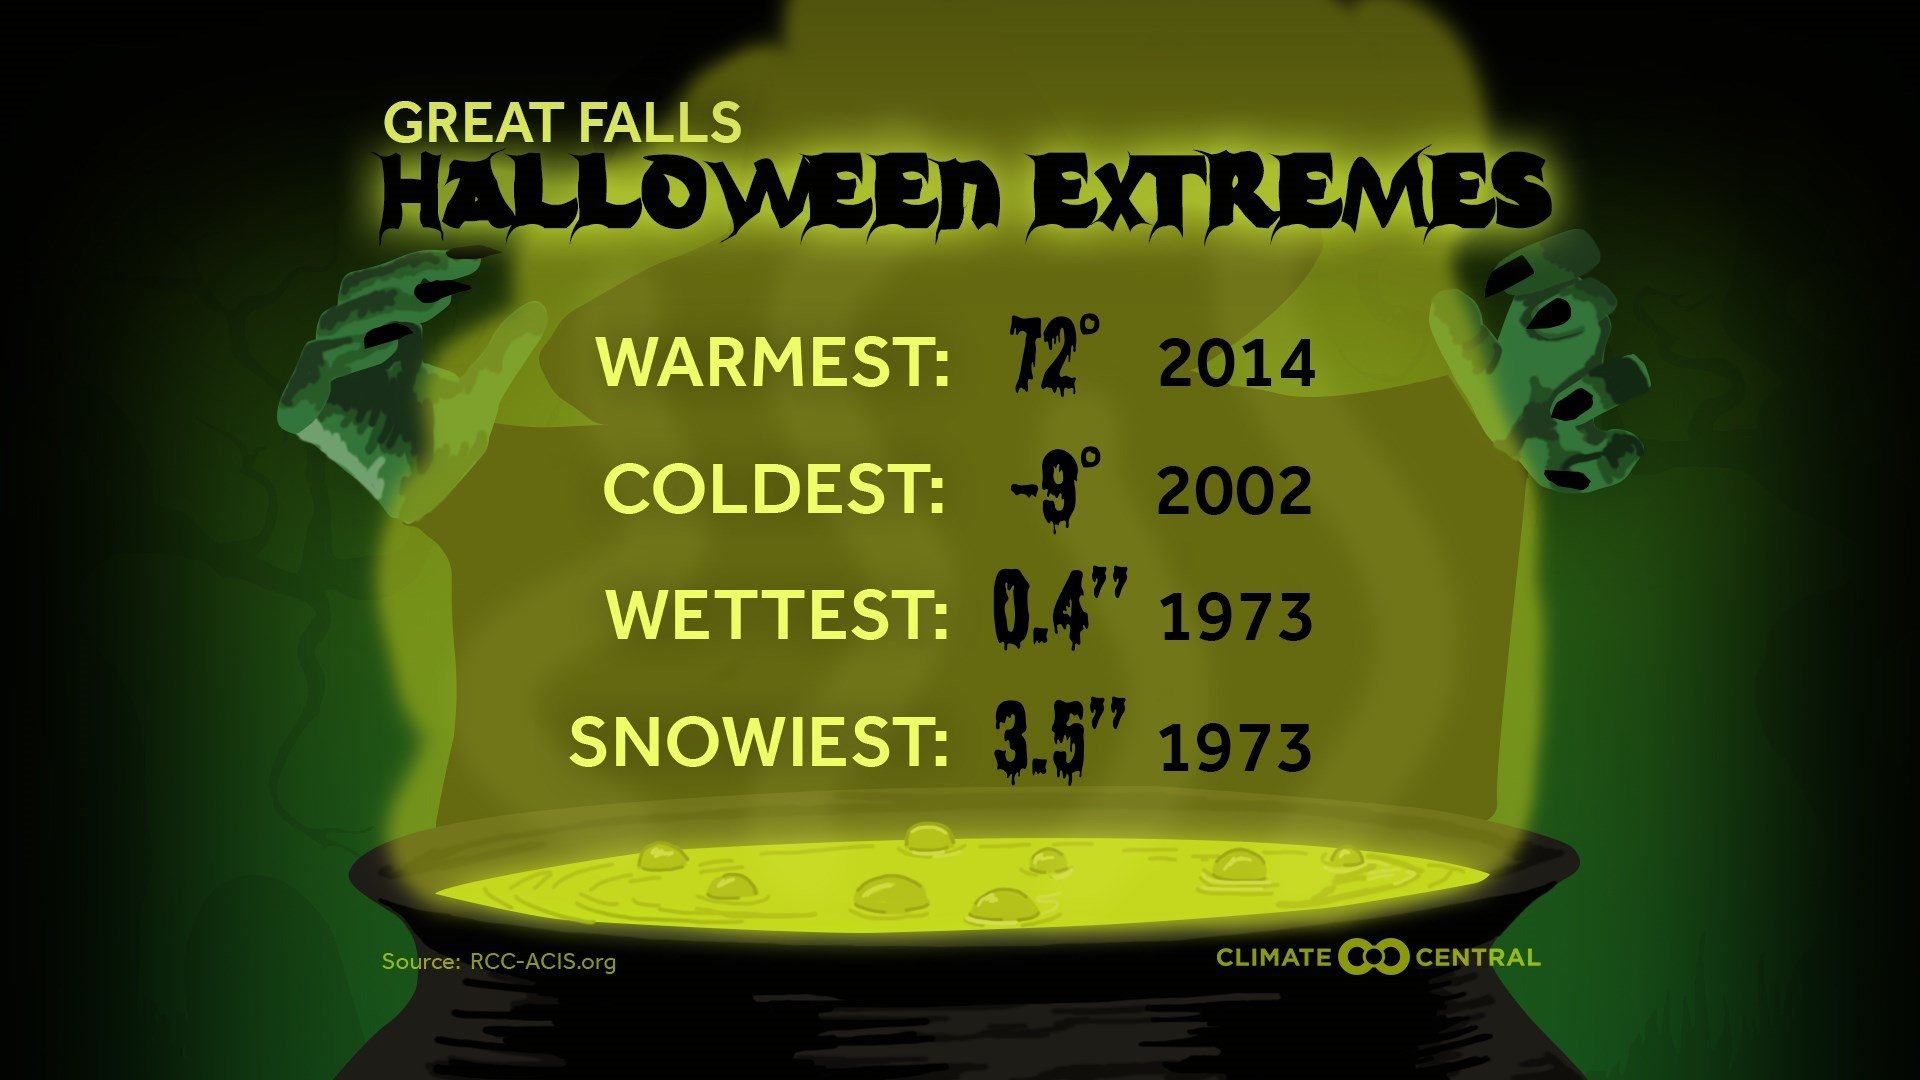 Great Falls Halloween extremes